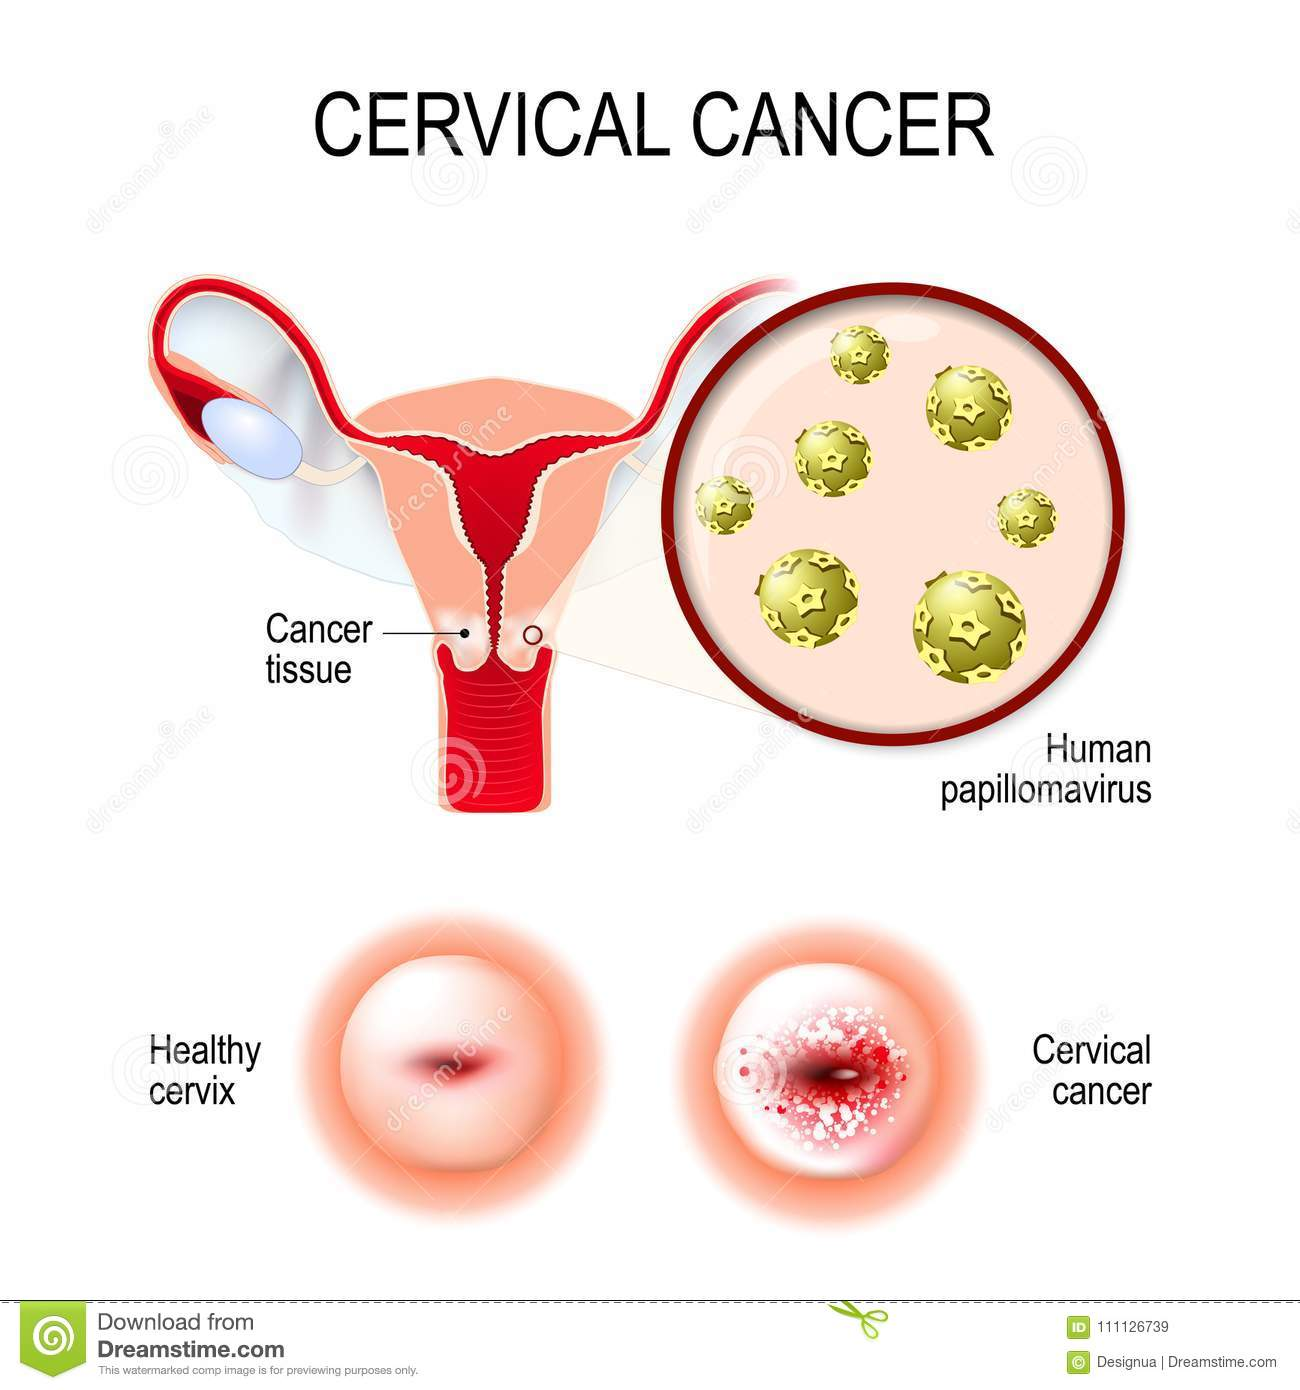 Human papillomavirus (hpv) is a significant cause of which disease